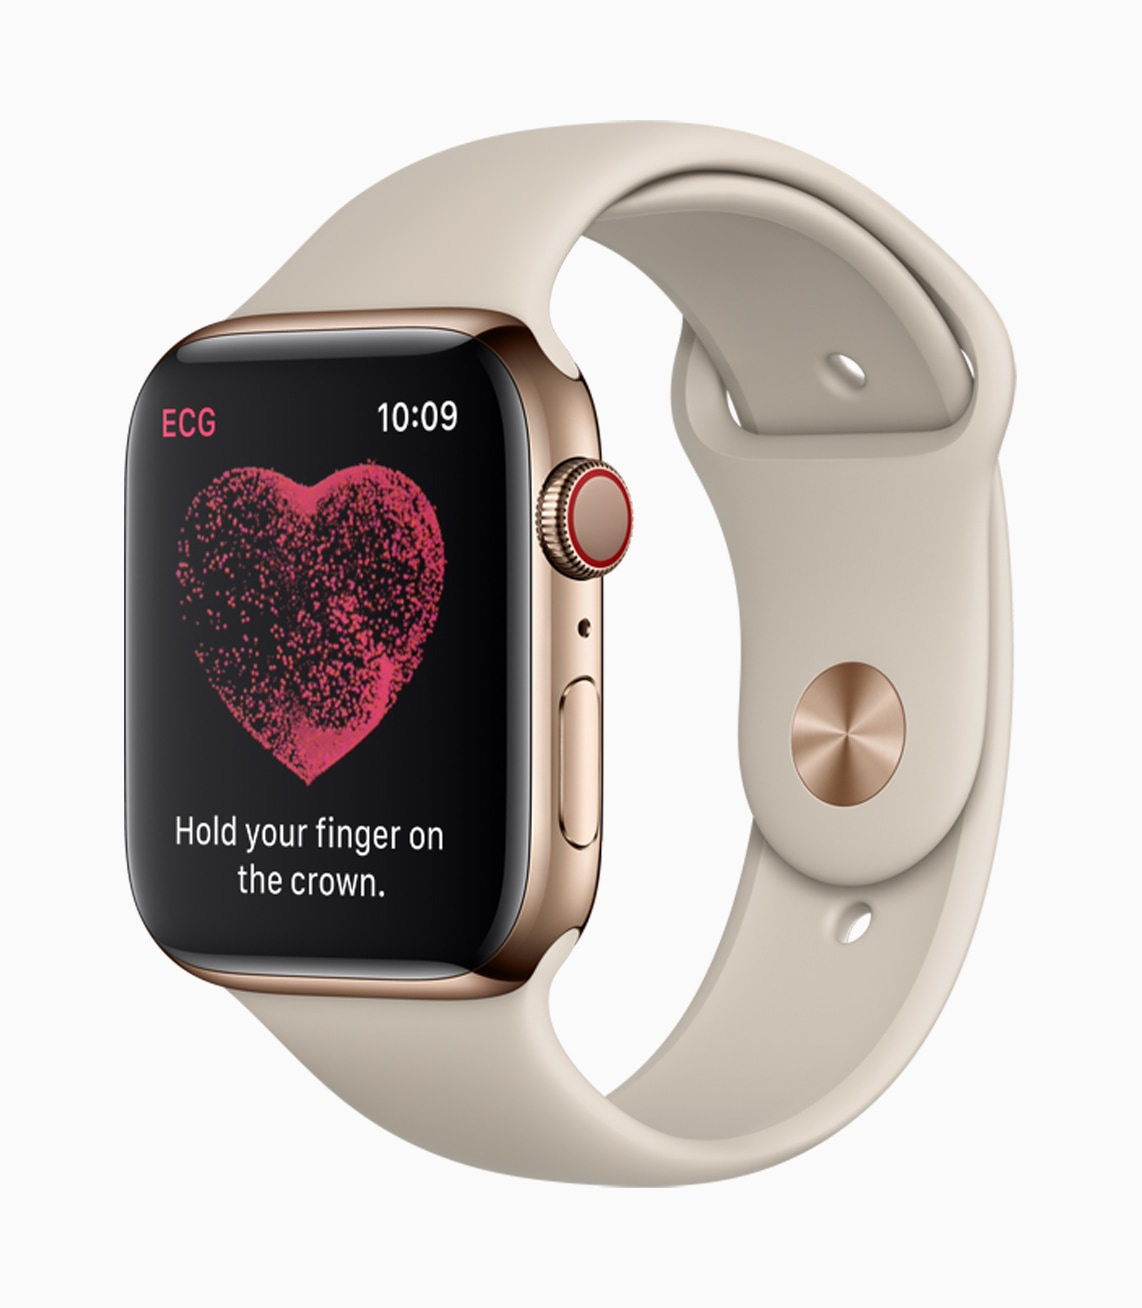 ECG no Apple Watch Series 4